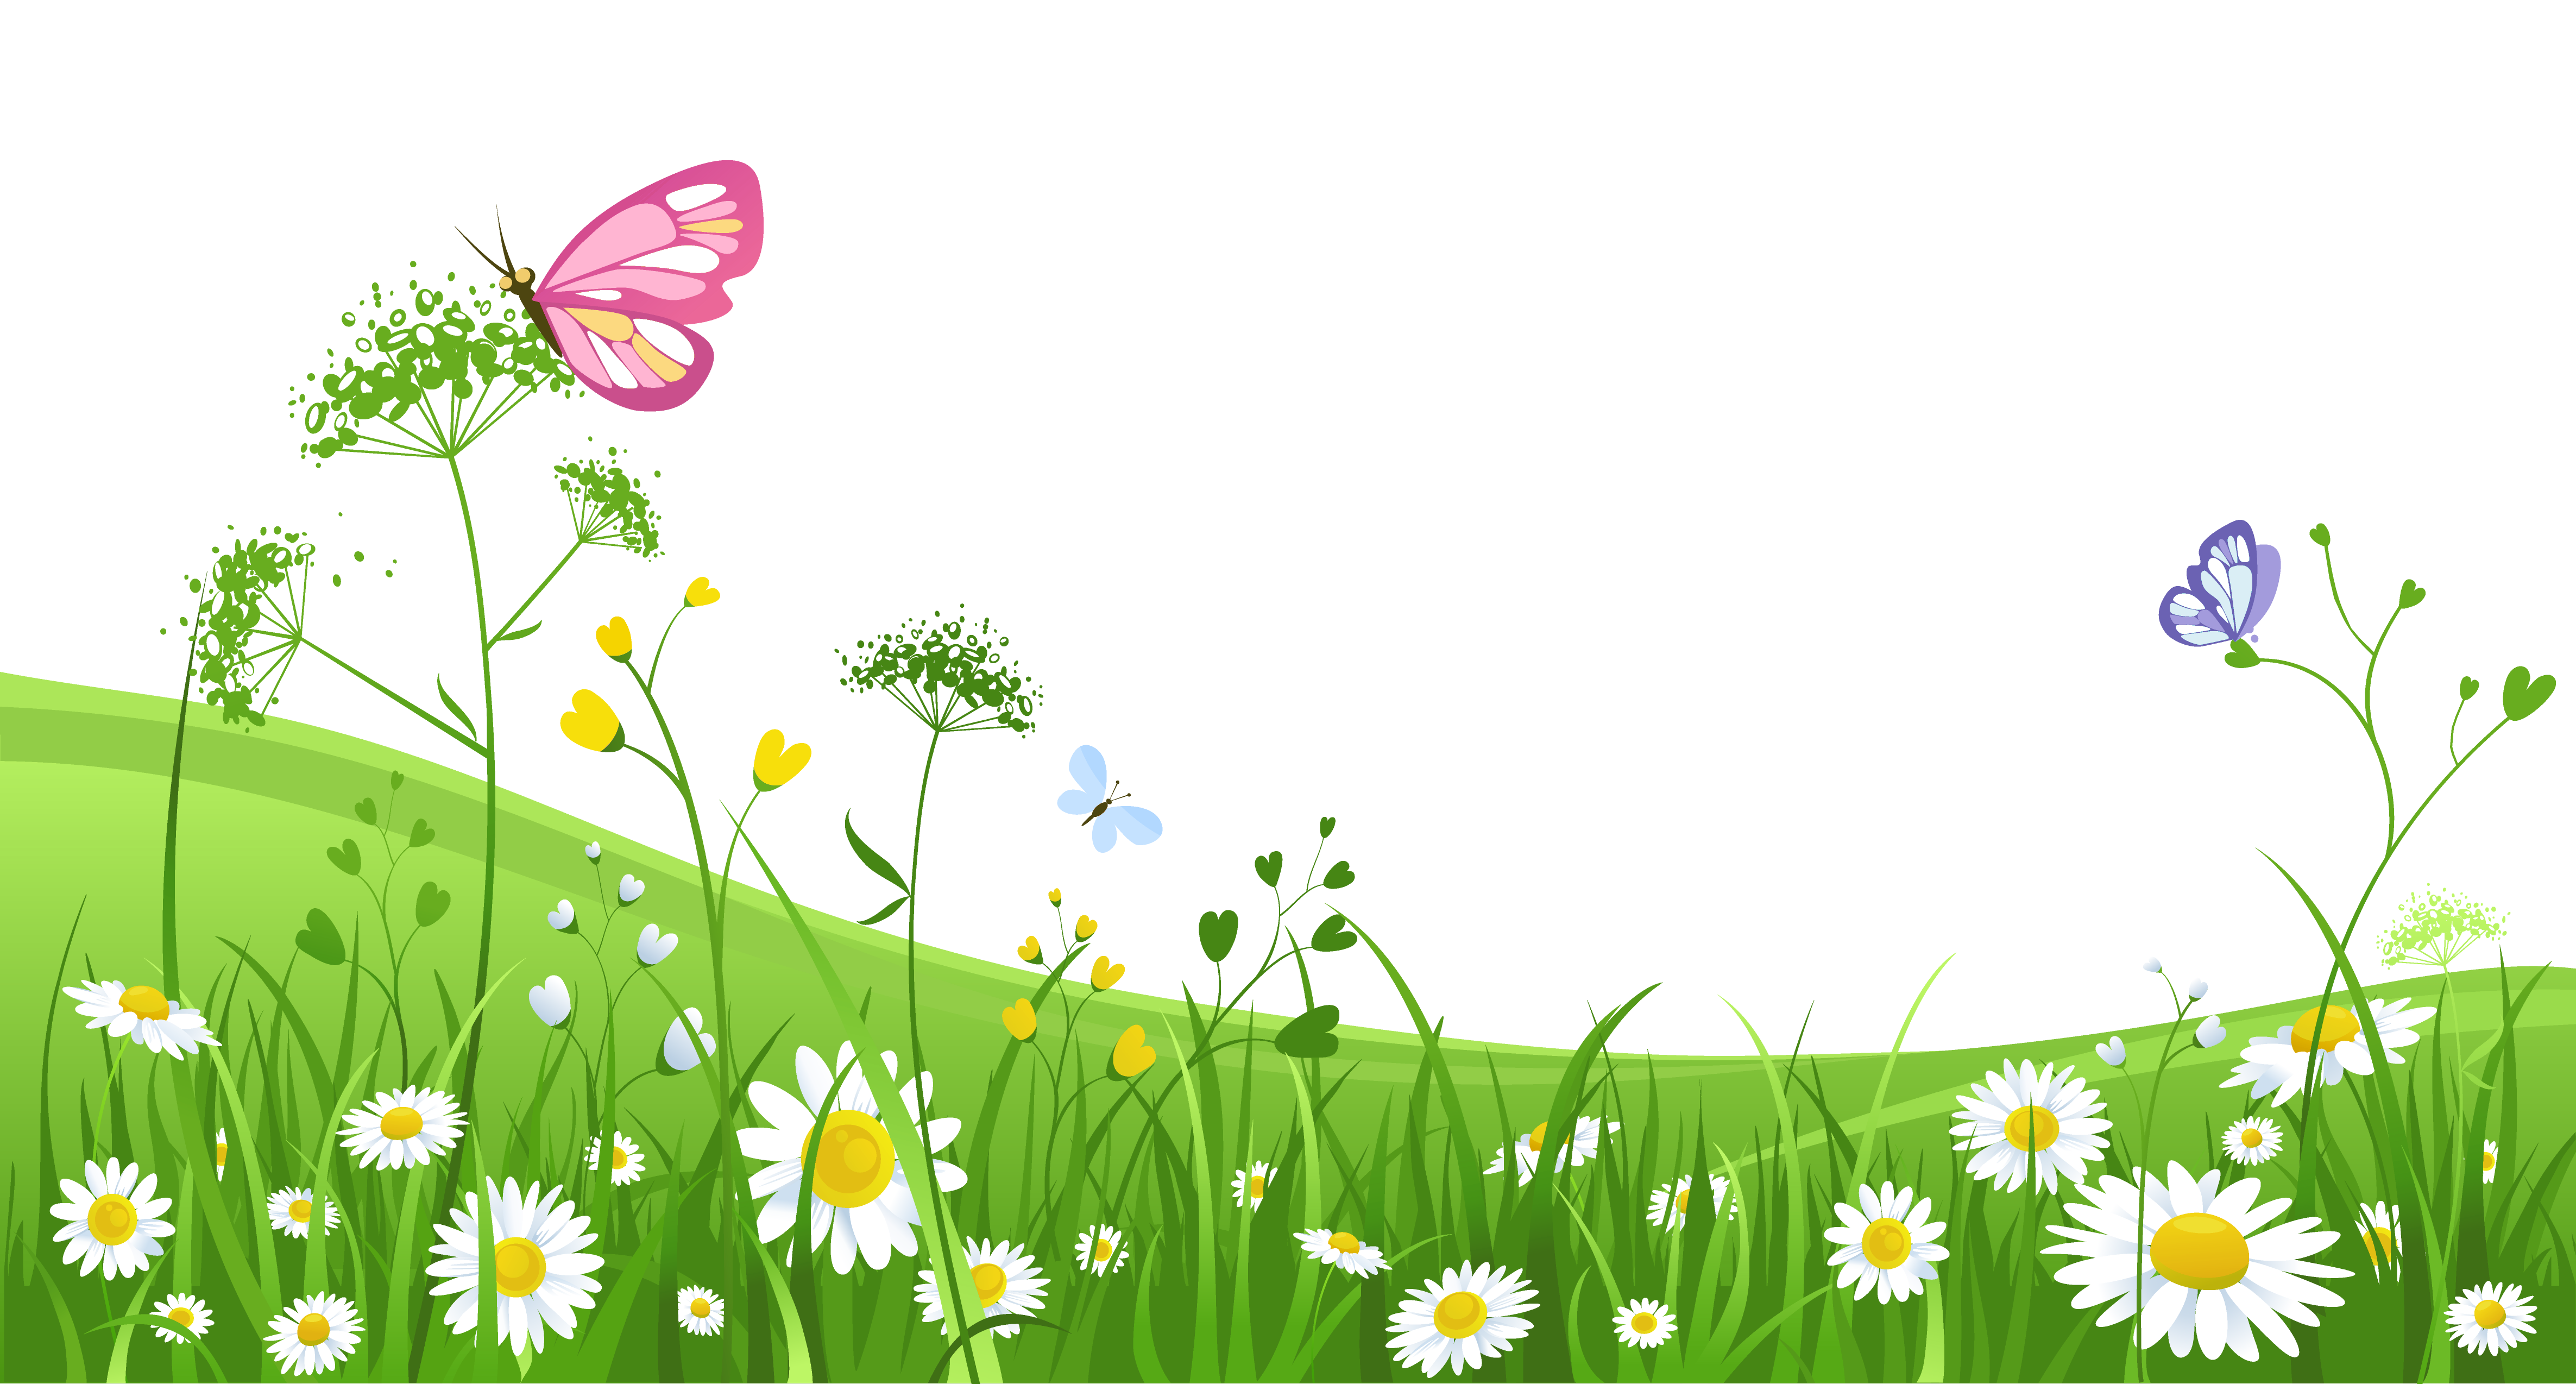 Grass and flowers clipart vector black and white Grass and flowers clipart background - ClipartFest vector black and white